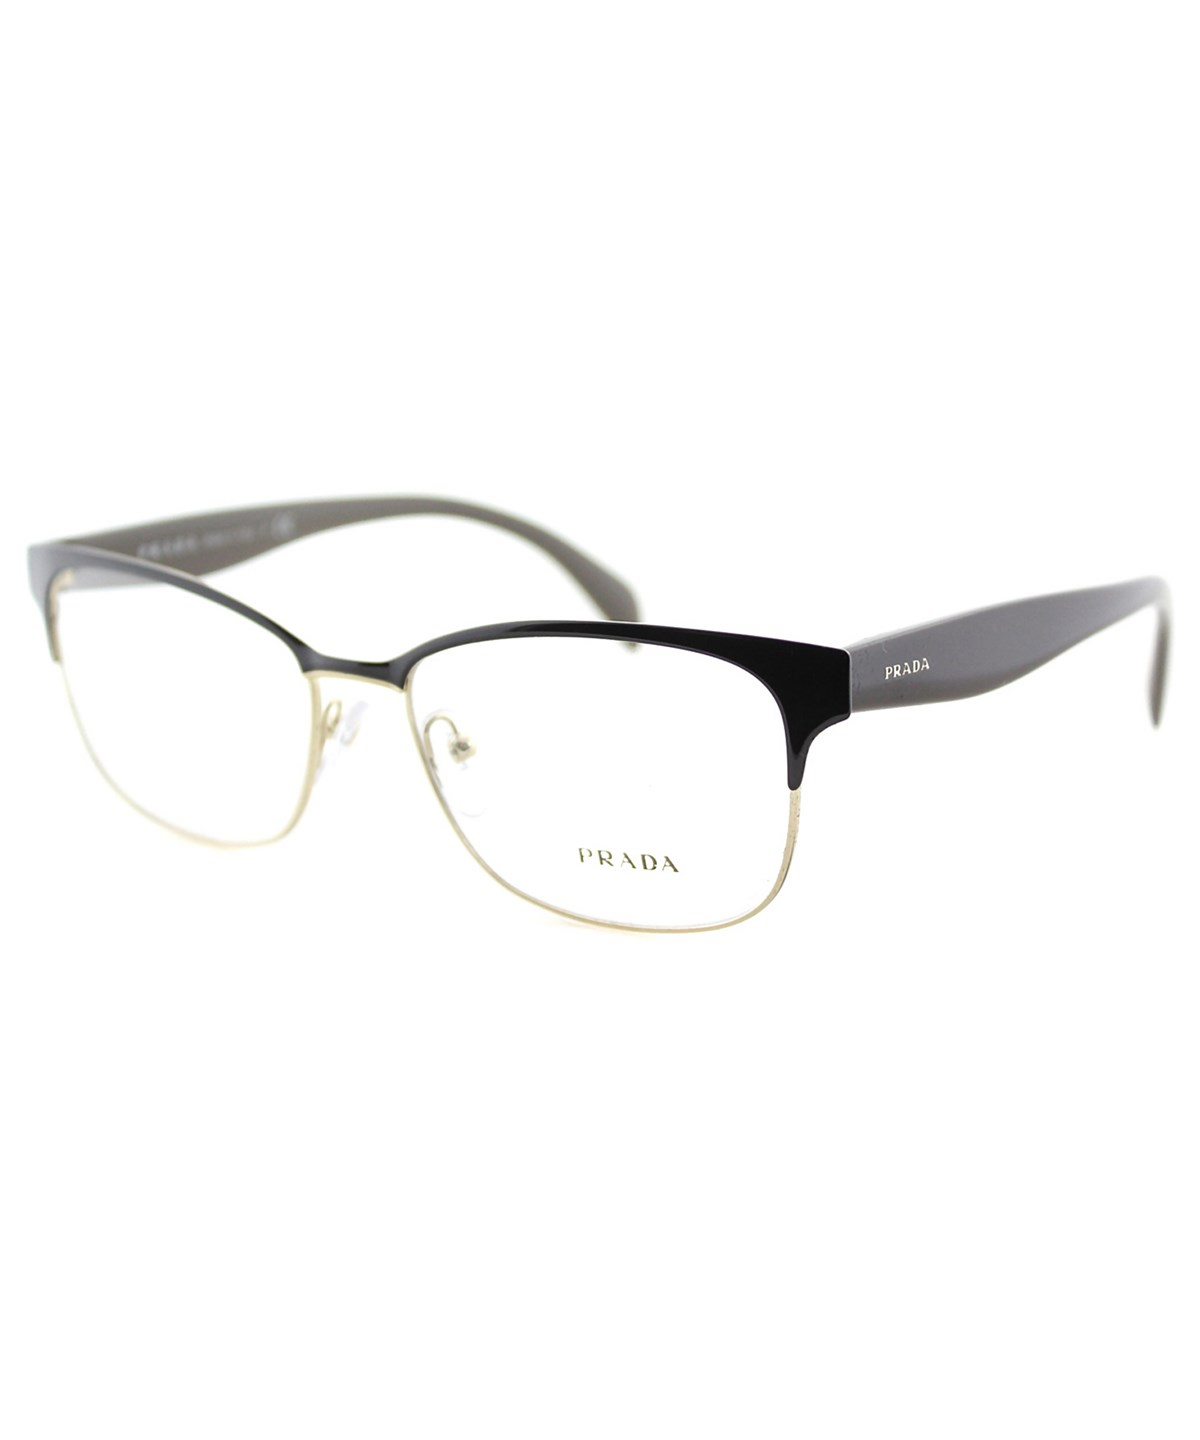 Prada Rectangle Metal Eyeglasses In Brown On Pale Gold